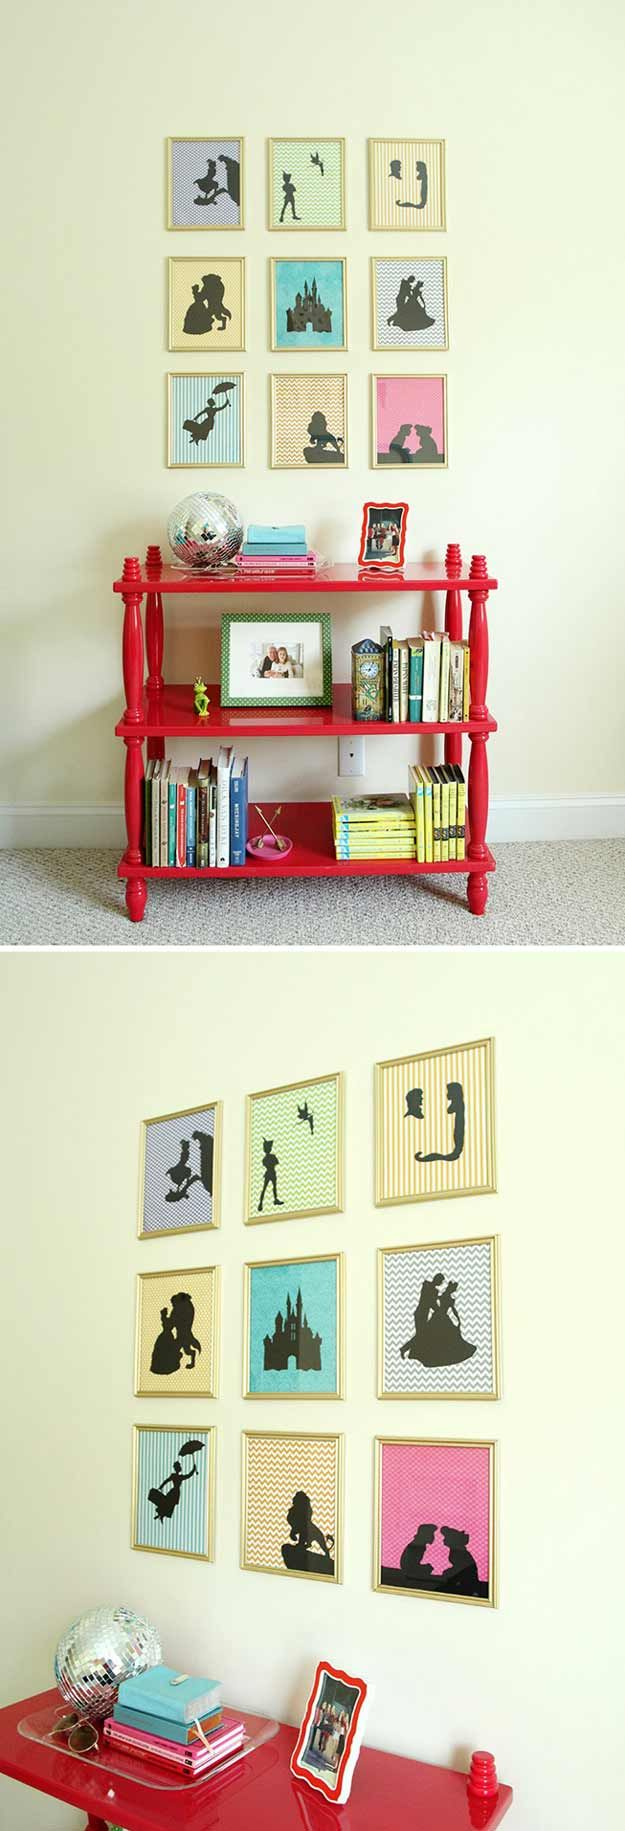 best 25+ disney room decorations ideas on pinterest | disney rooms